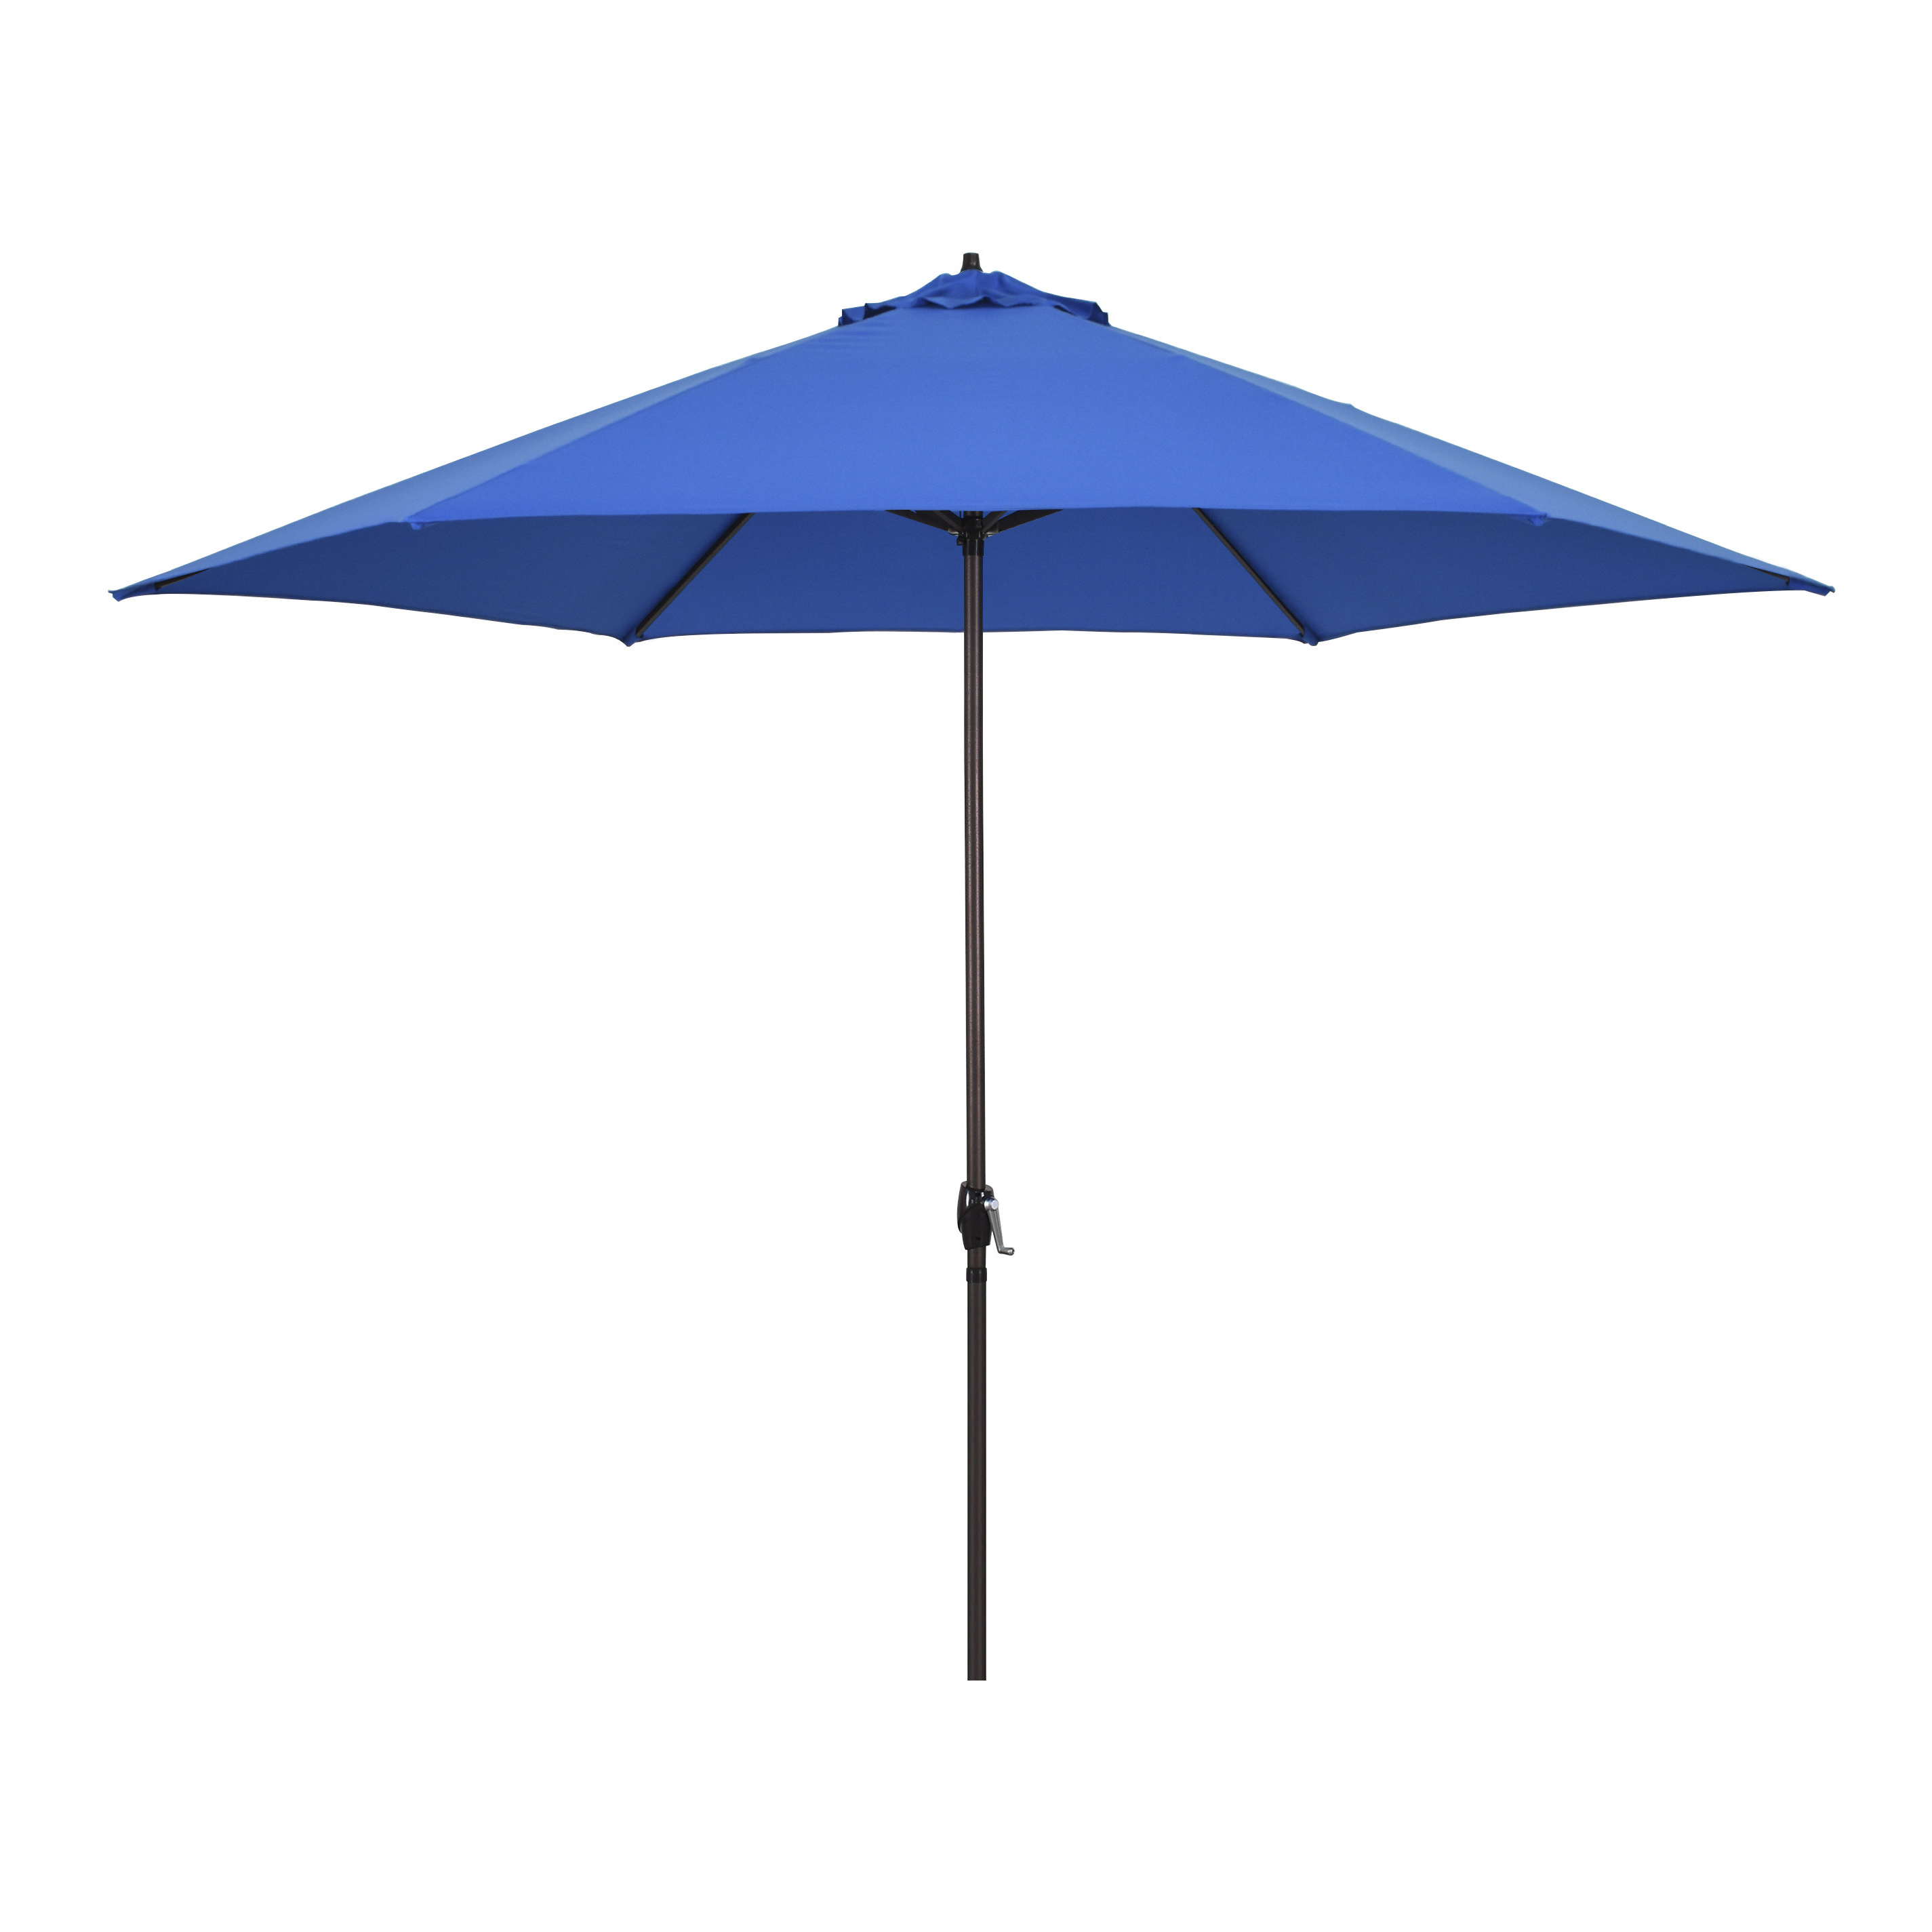 Mucci Madilyn Market Sunbrella Umbrellas Within Preferred Mcdougal 11' Market Umbrella (View 13 of 20)